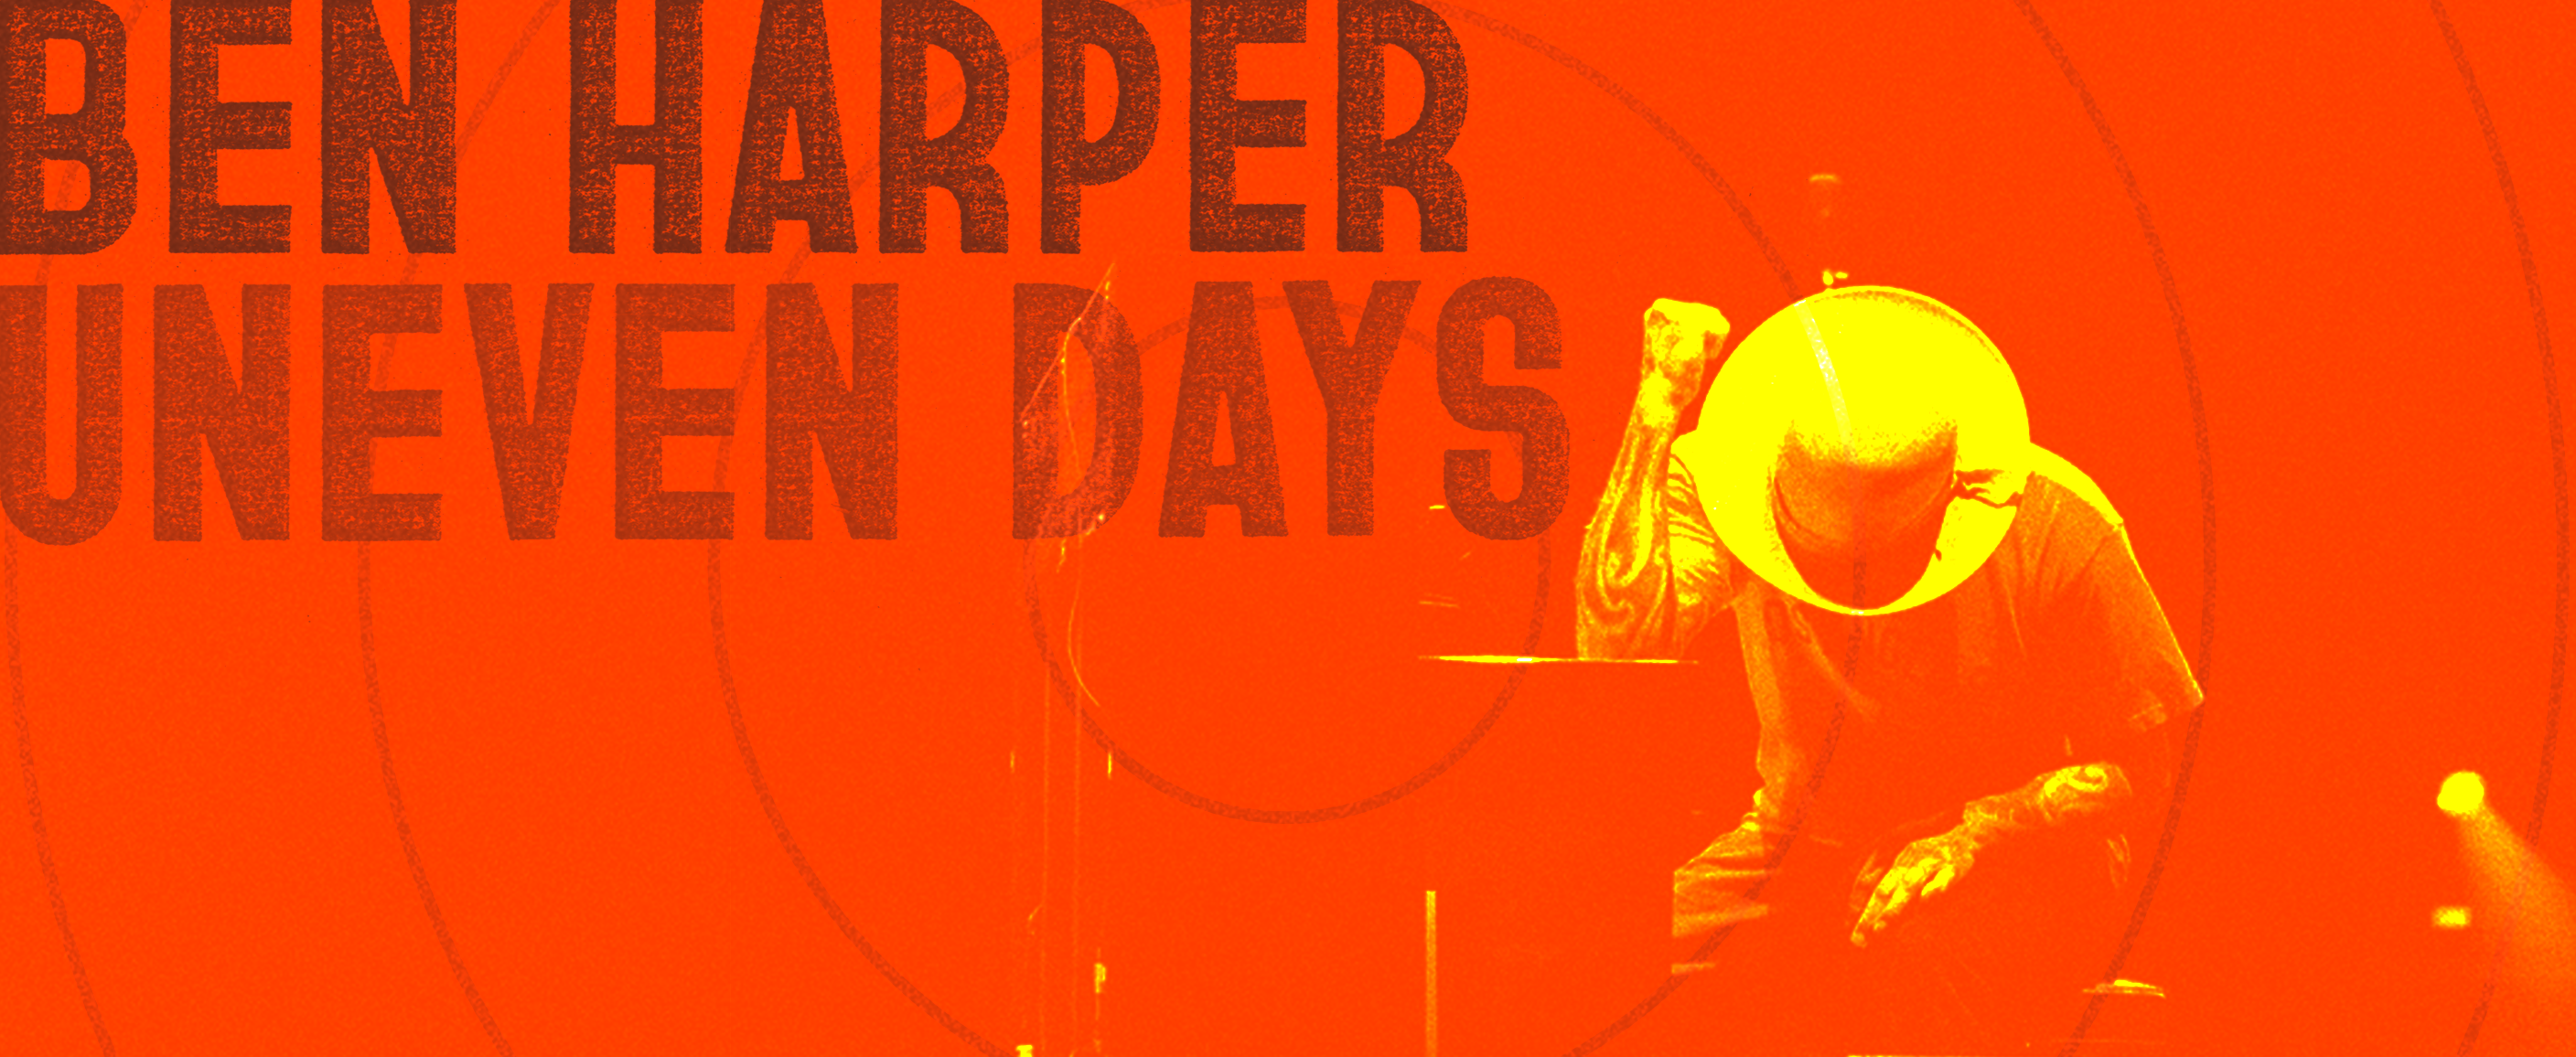 Ben Harper - Uneven Days - Available Now